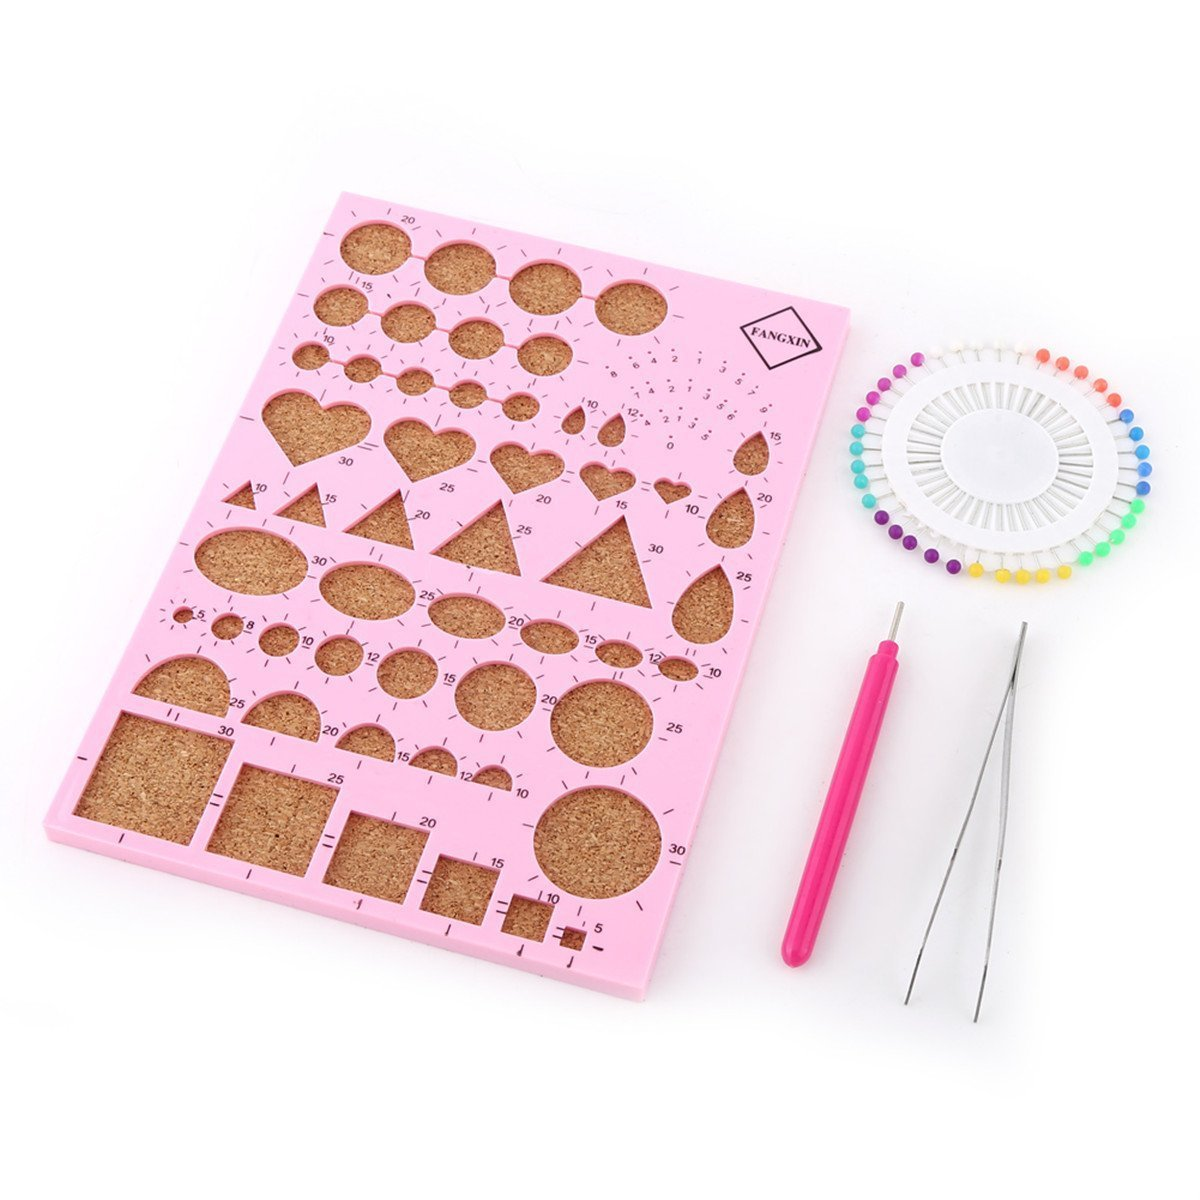 DIY Paper Craft Paper Quilling Template Board Slotted Pen Bead Pins Tweezer Beginner Quilling Tools Kit(8.3x6 Inch) (pink) Walfront TRTBB1414